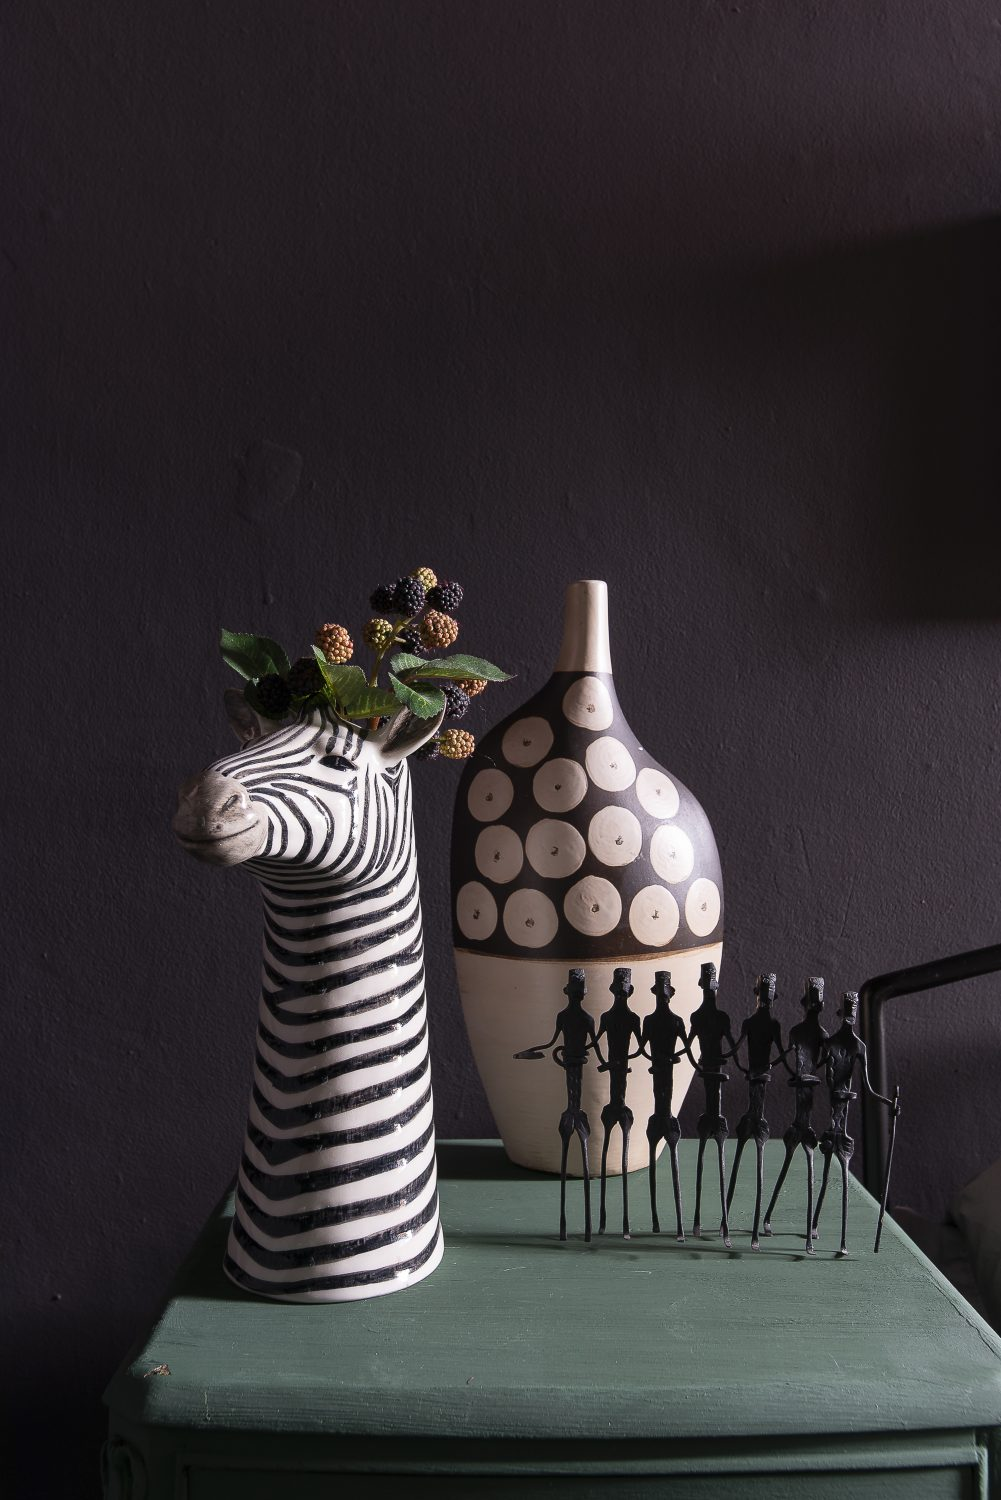 The zebra head pot, sourced from a shop called Hilary and Flo, is arranged with other pieces that Jaz has added to her collection over the years